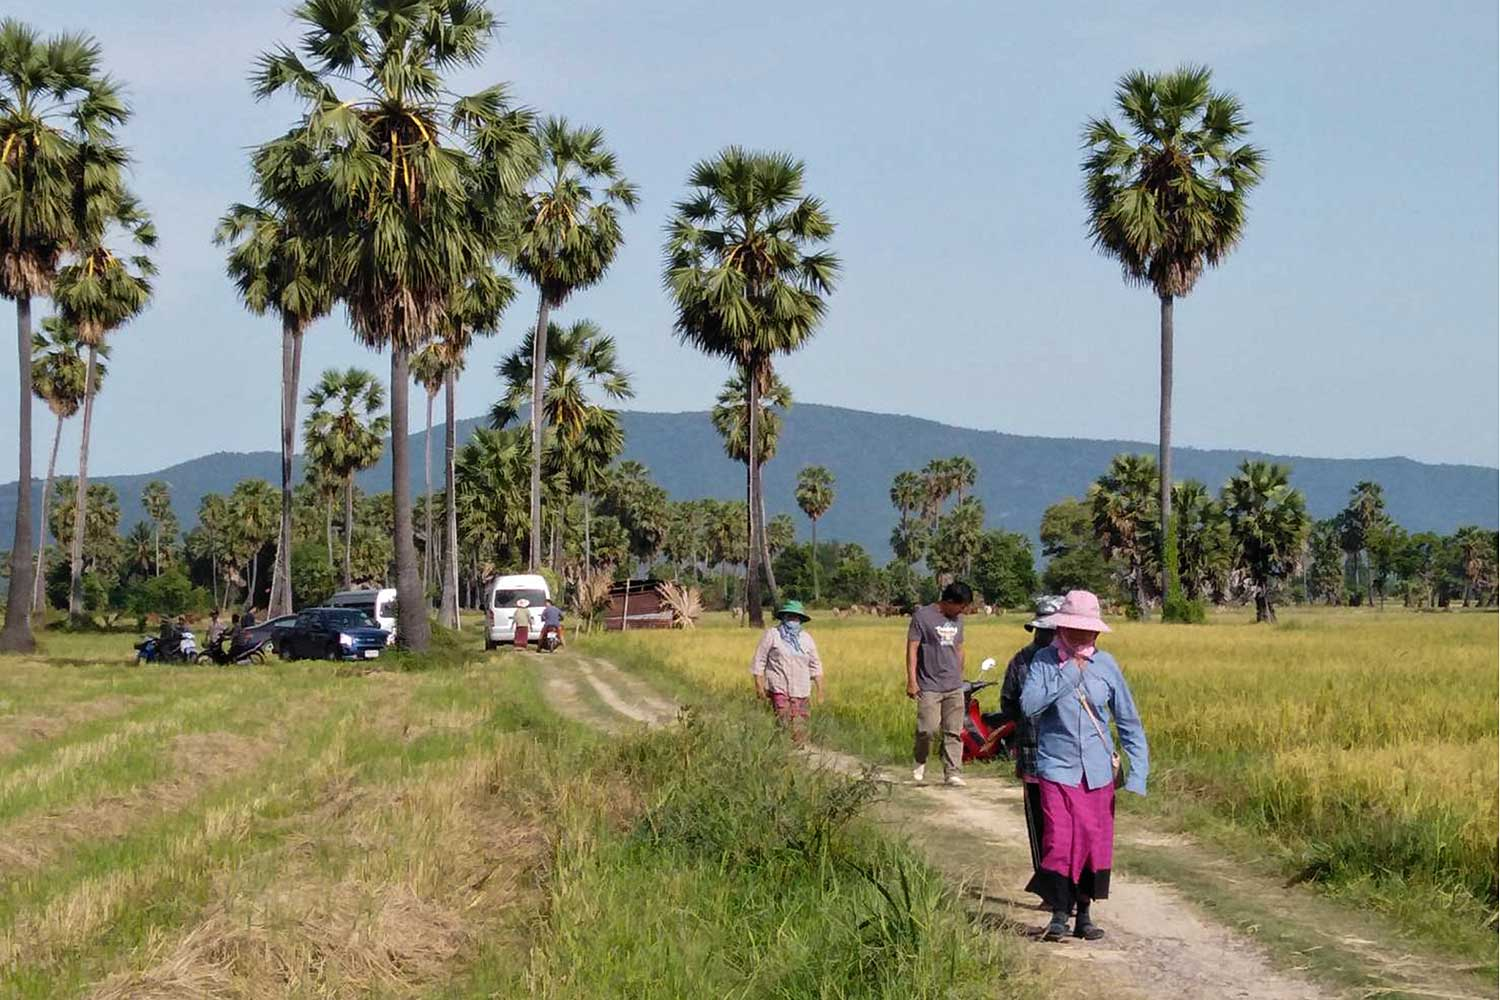 Residents of Phetchaburi's Ban Lat district lead reporters to visit areas which would be affected by the Nakhon Pathom-Cha-am motorway. (Photo by Apinya Wipatayotin)